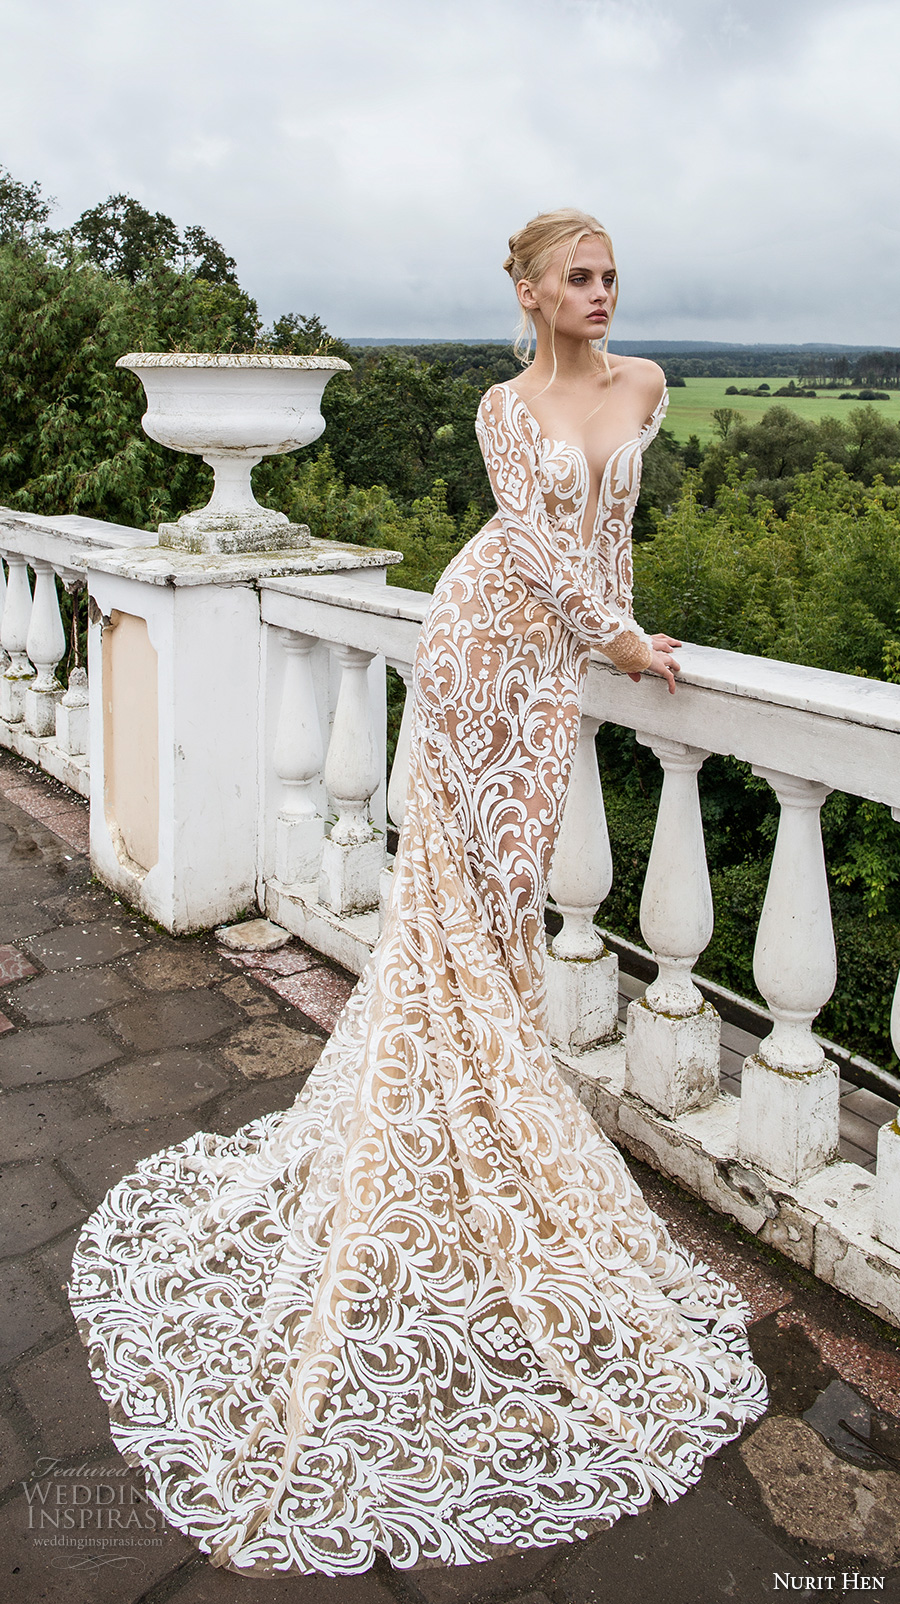 nurit hen 2017 bridal long sleeves deep plunging sweetheart neckline full embellishment galmorous sexy ivory color sheath wedding dress open back chapel train (8) mv